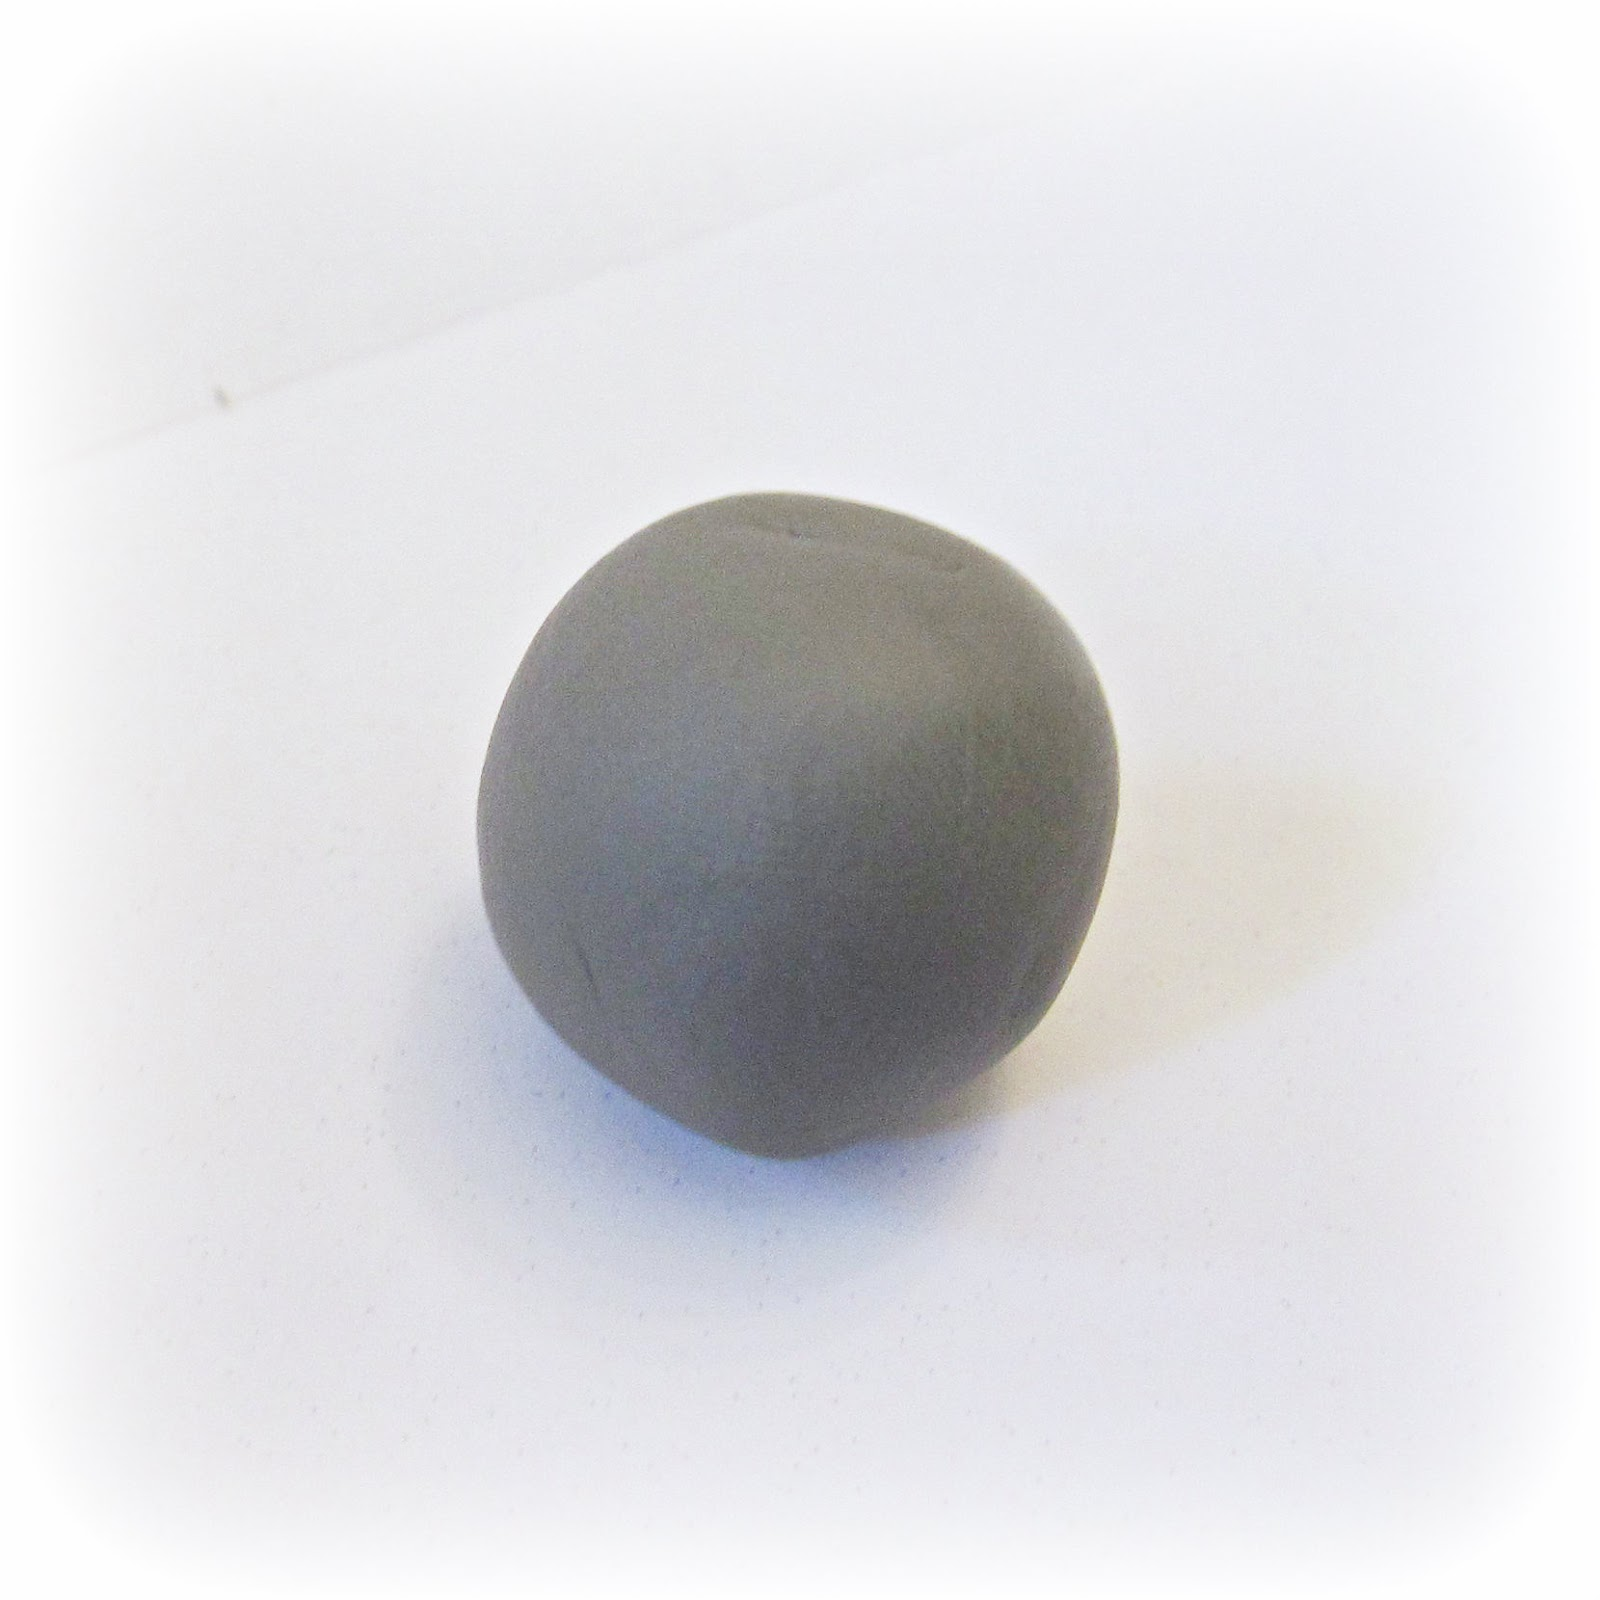 image polymer clay gumball grey gray sculpey